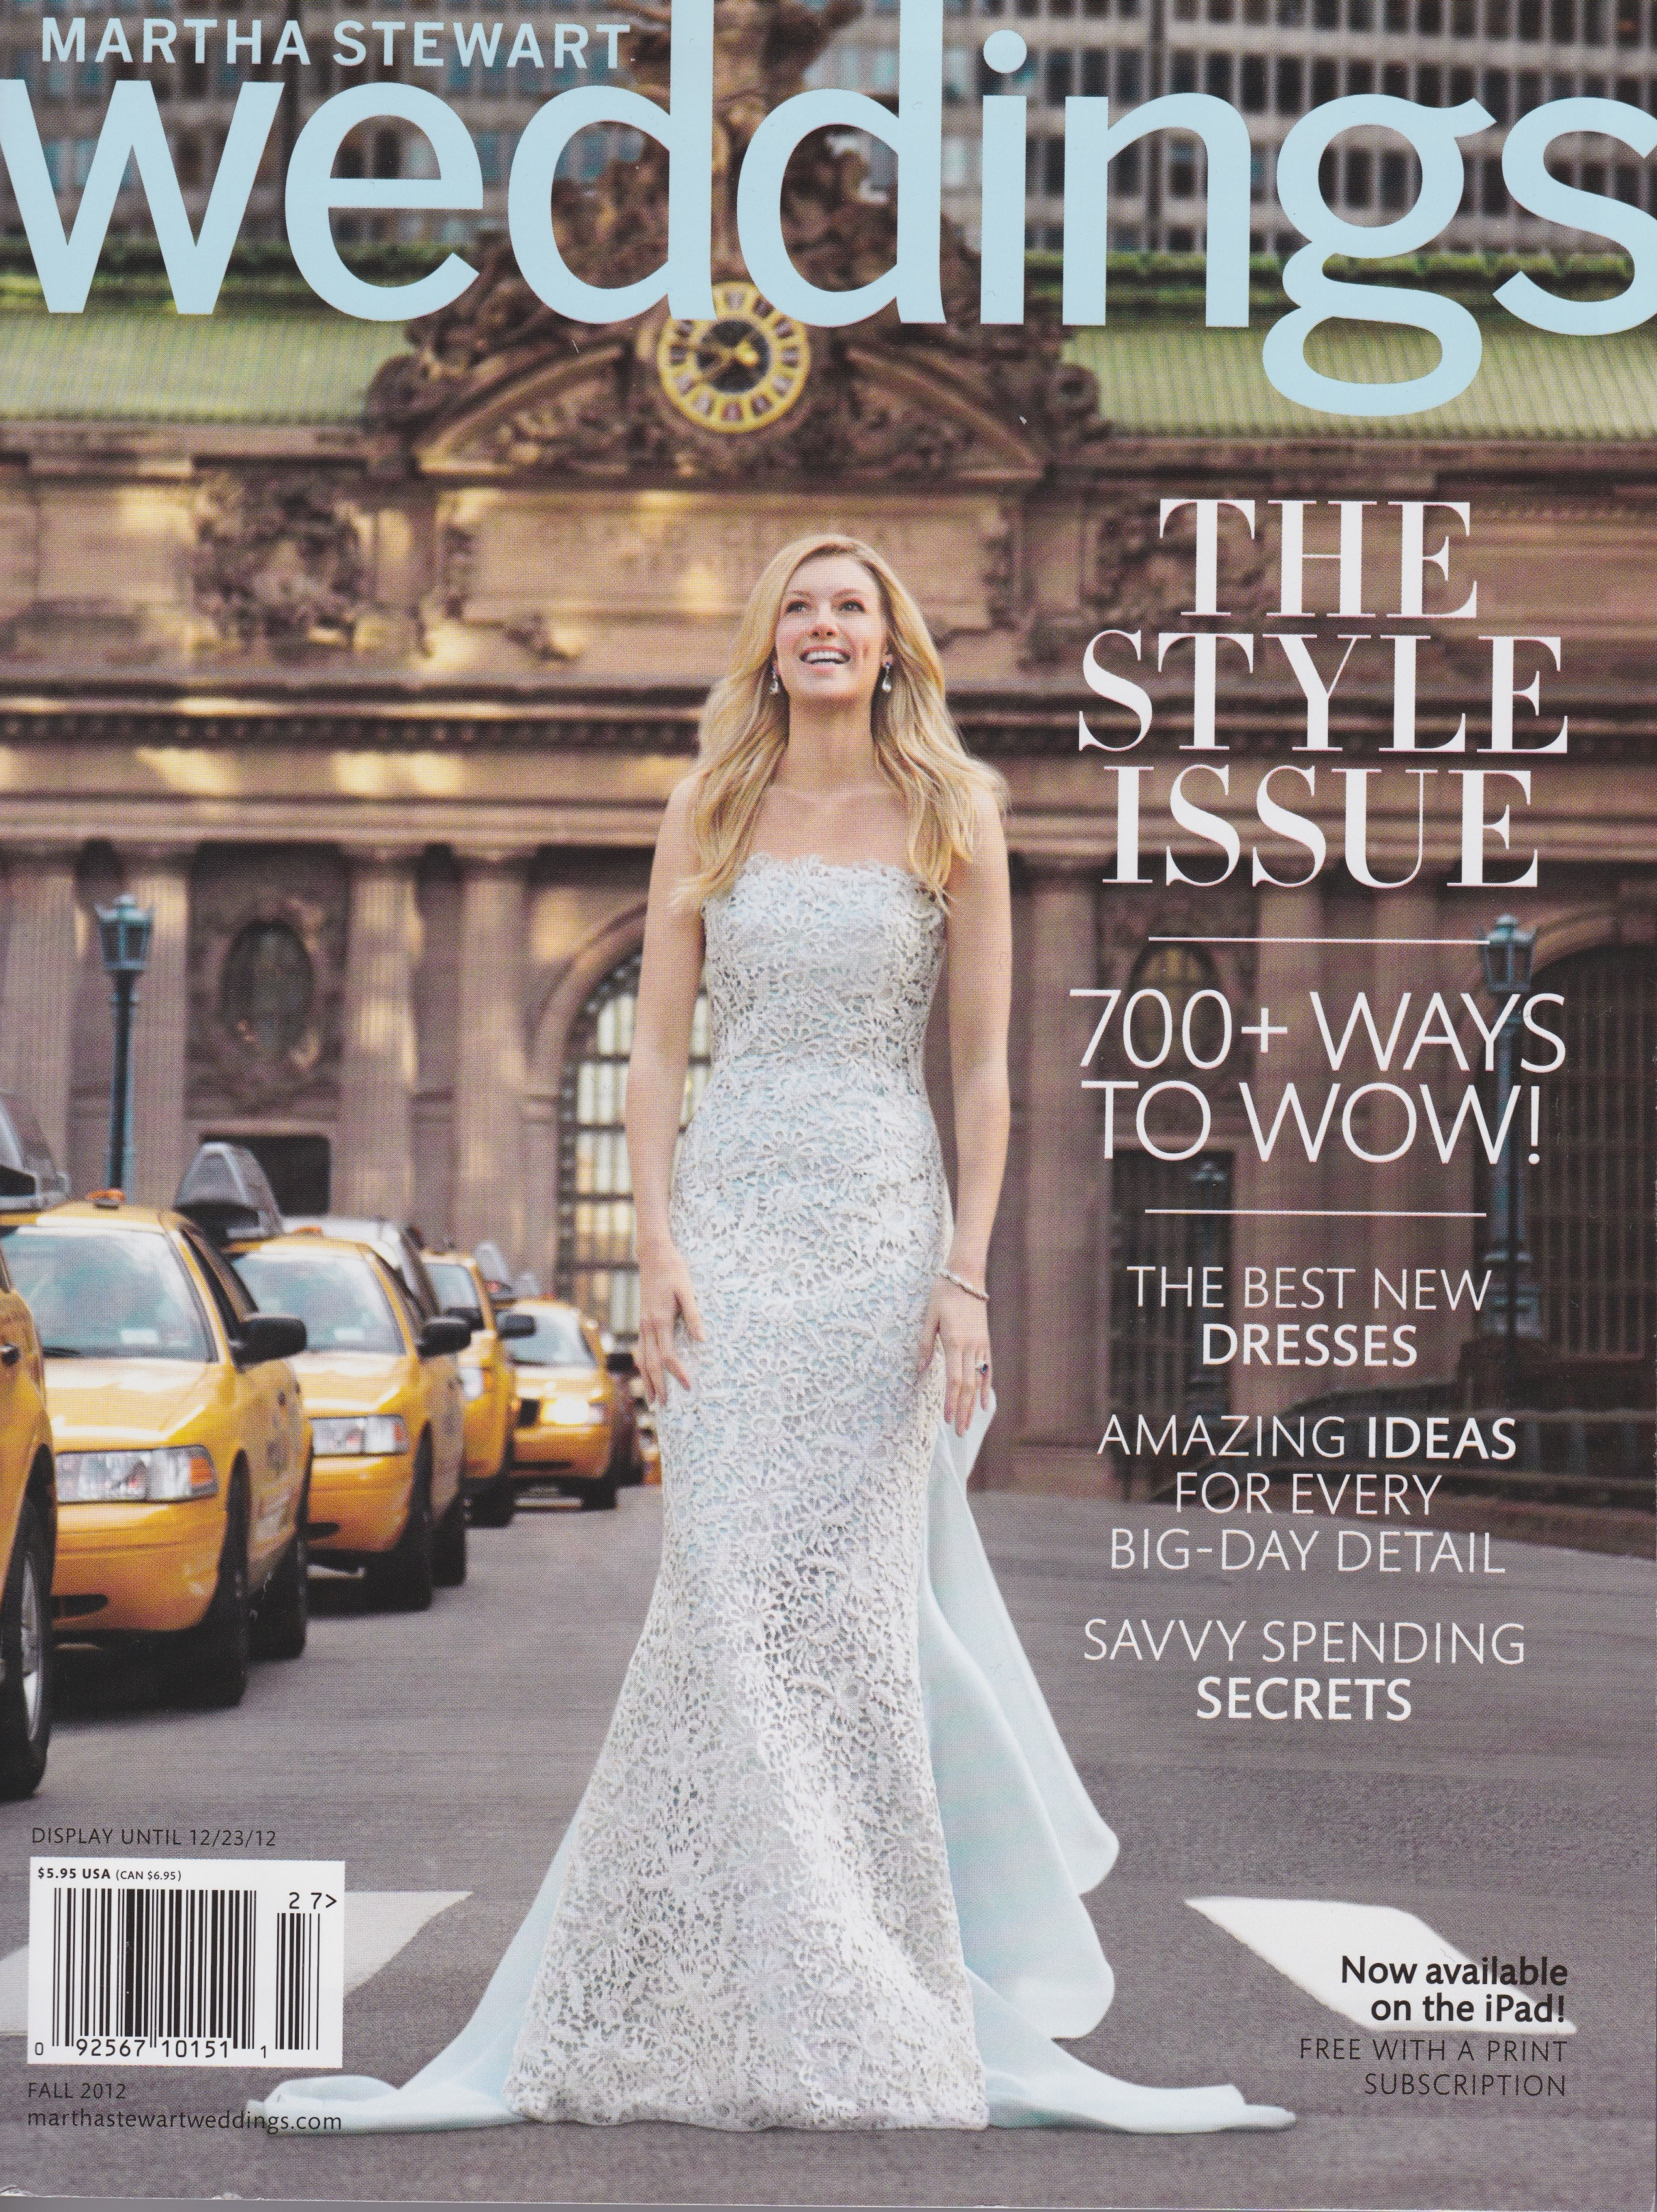 Martha Stewart Weddings September 2012